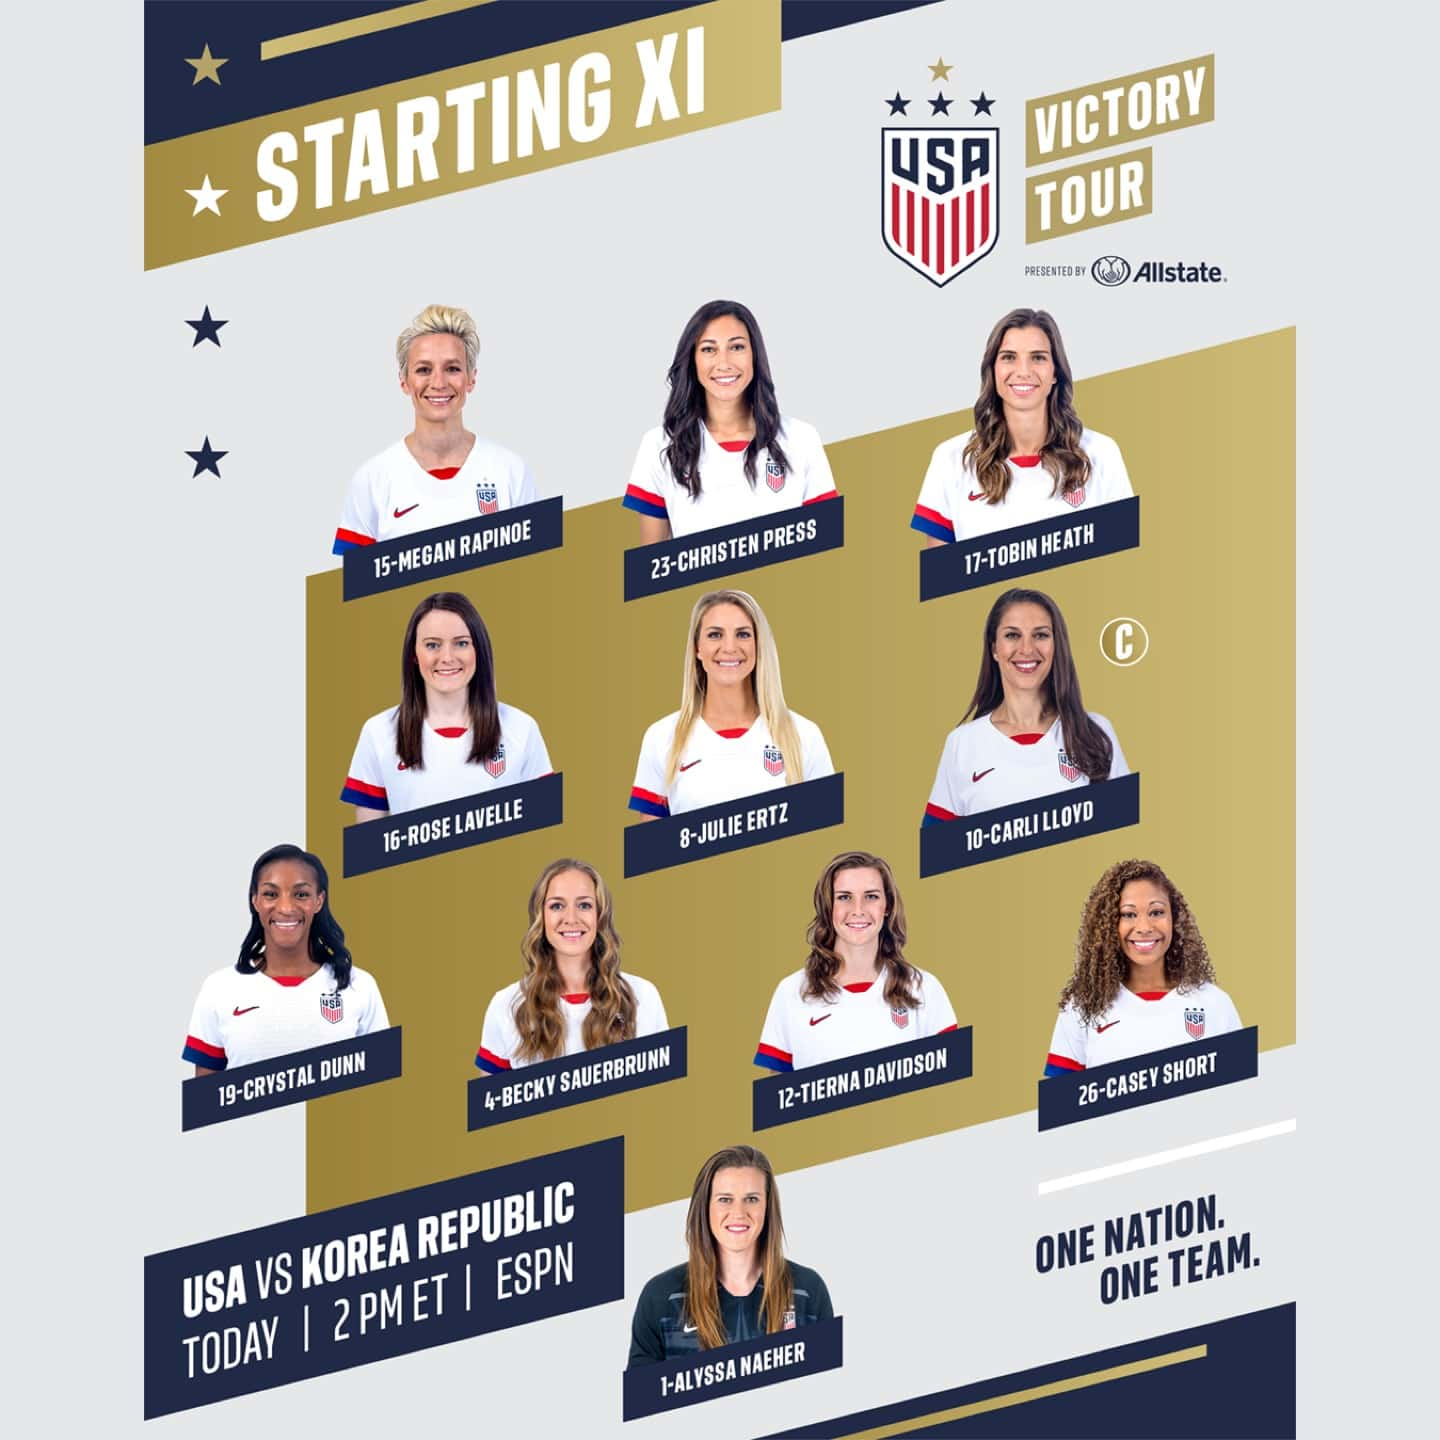 USA vs. Korea Republic in Chicago - Lineup, Schedule & TV Channels